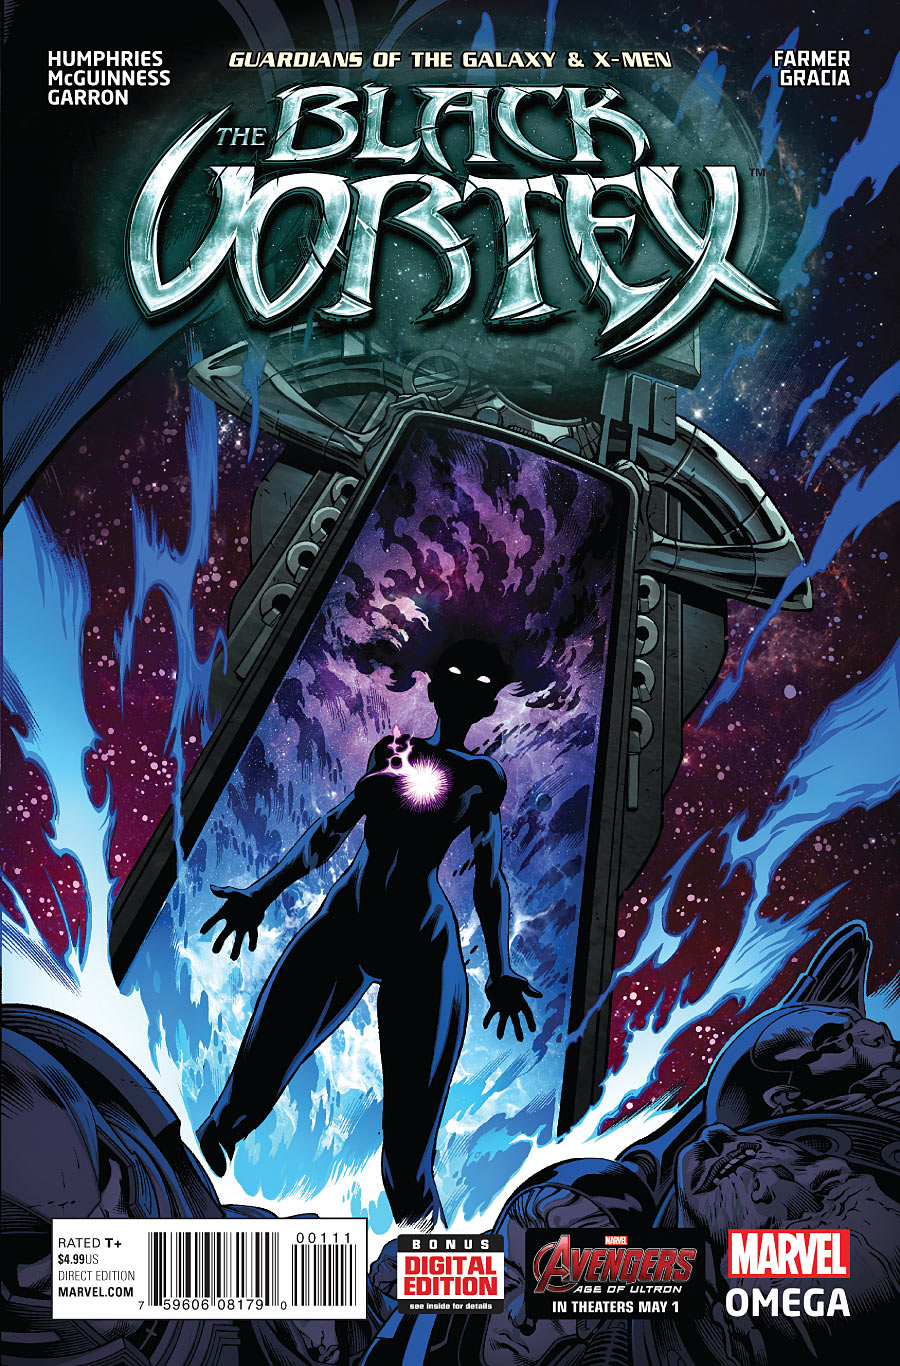 Guardians of the Galaxy & X-Men: Black Vortex Omega Vol 1